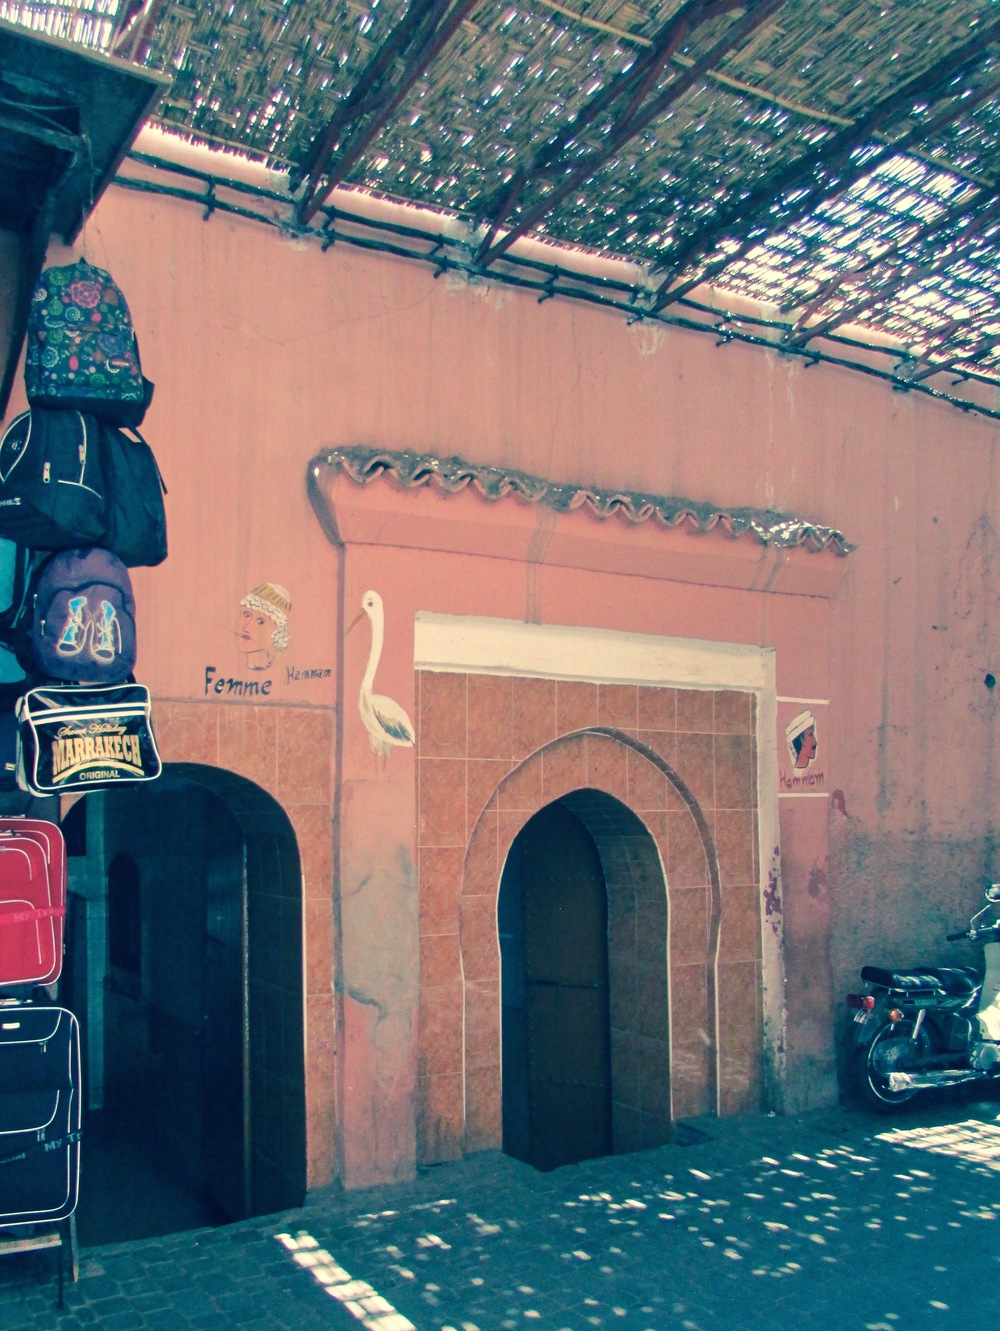 A typical entryway into a public hammam